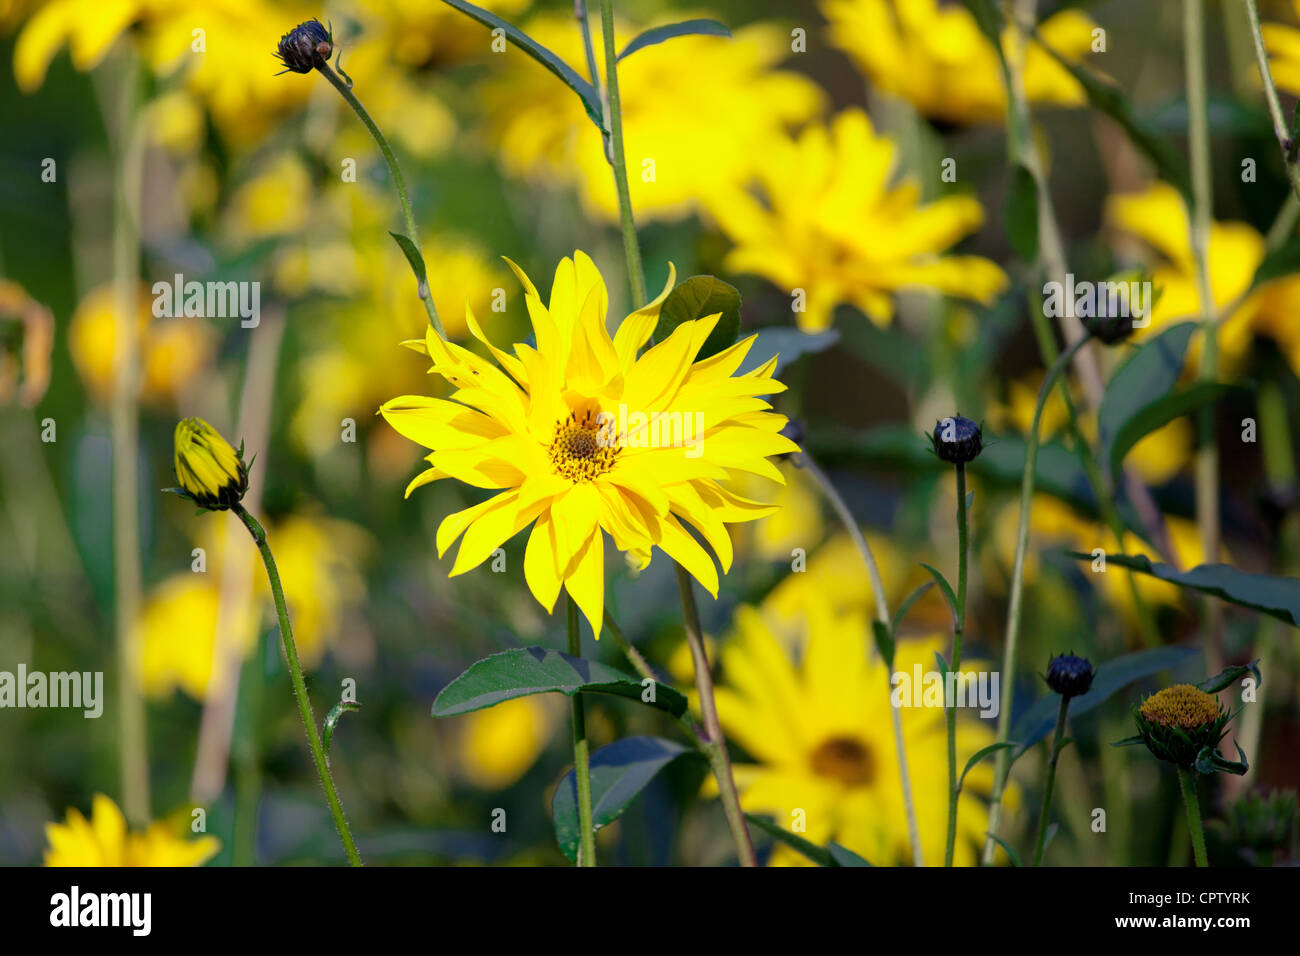 Rudbeckia flower, Asteraceae, also known as Coneflower, in garden in The Cotswolds, Oxfordshire, UK - Stock Image